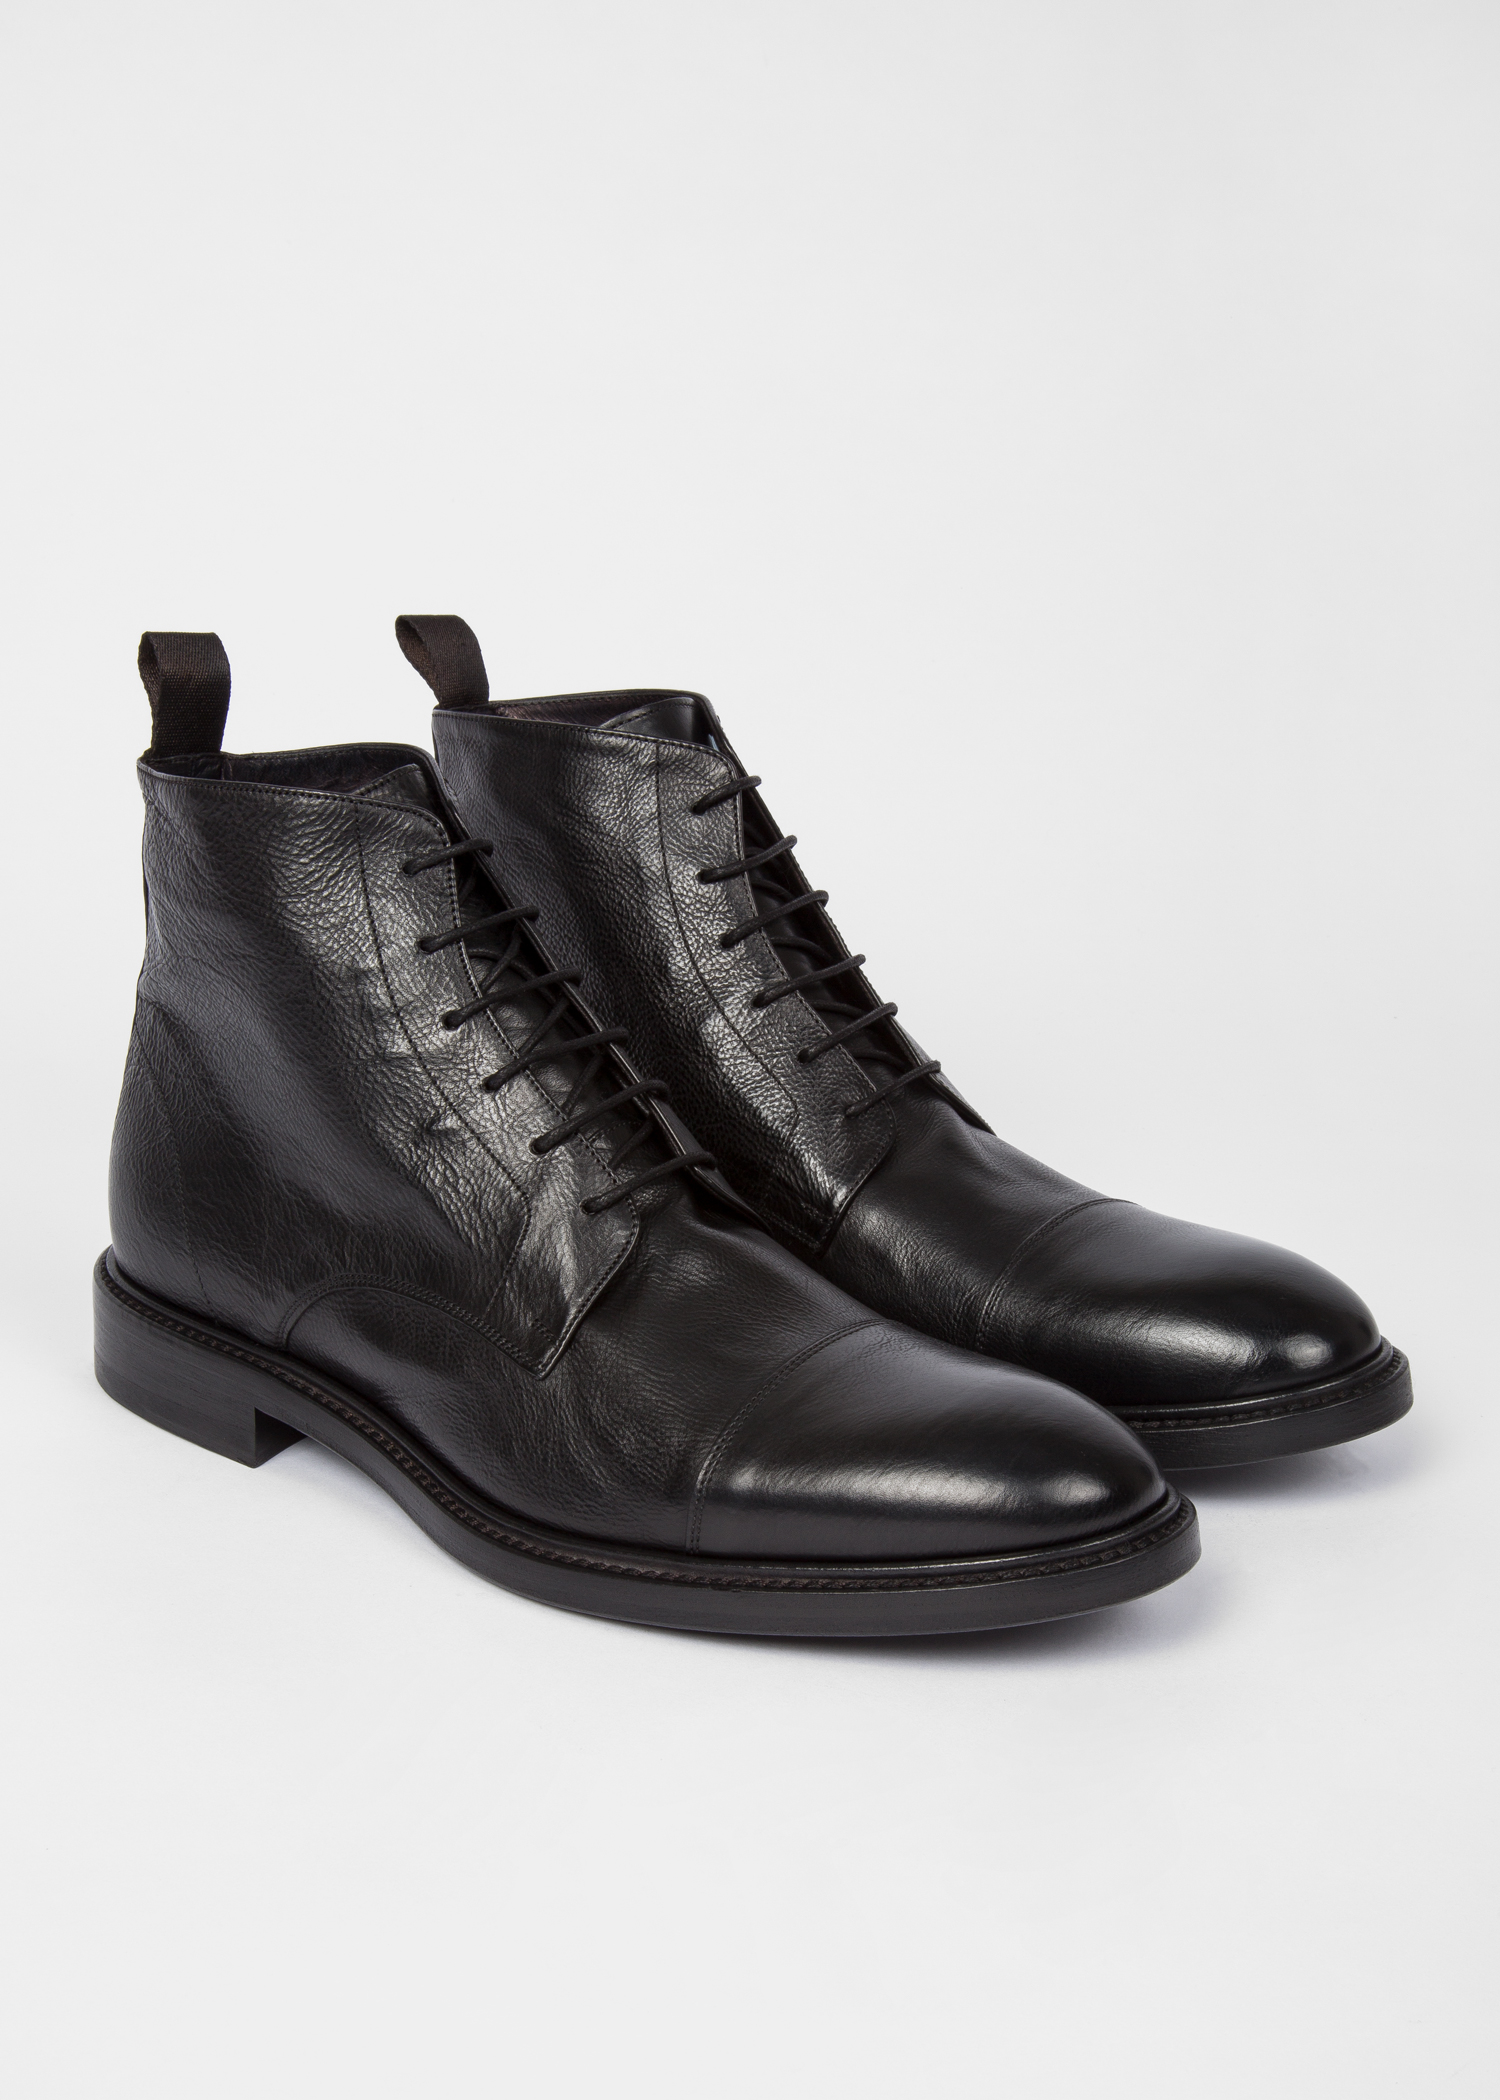 cb6fcb634 Men's Dip-Dyed Black Calf Leather 'Jarman' Boots - Paul Smith US